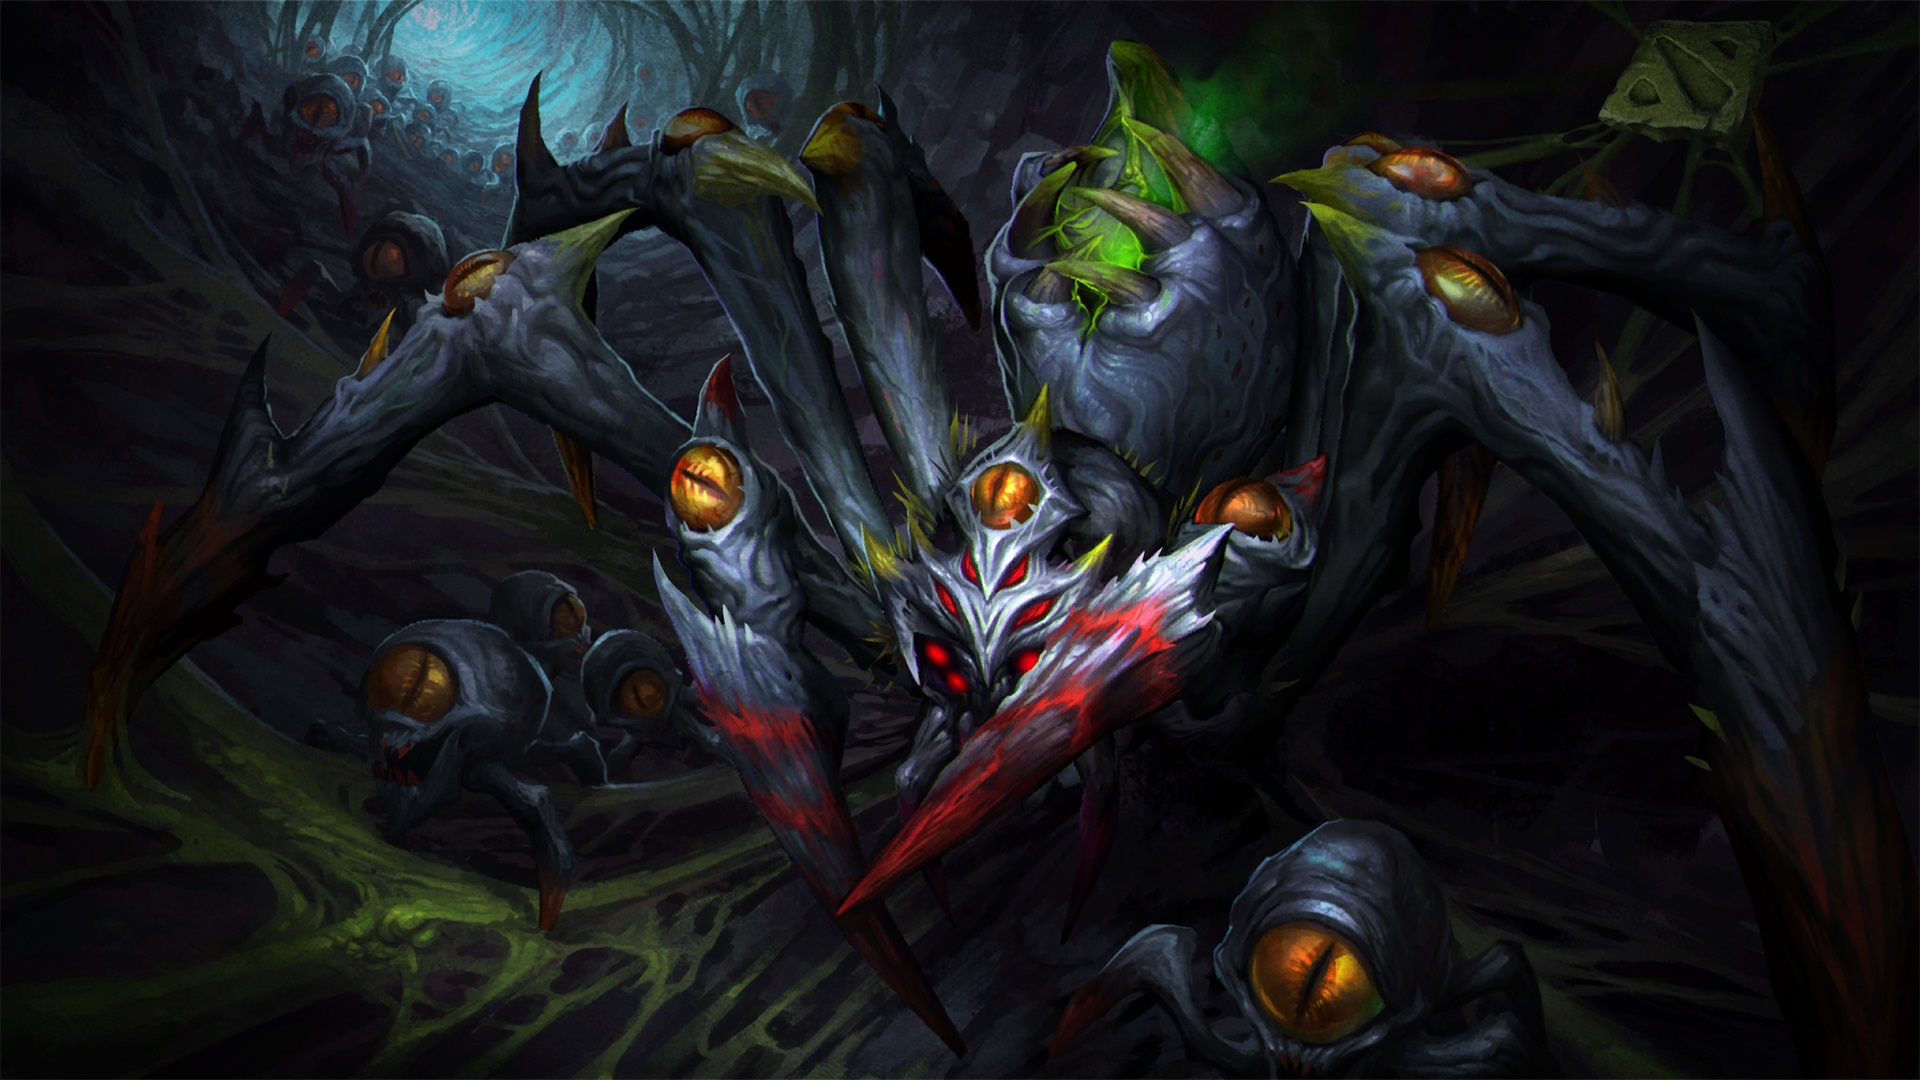 BroodMother Webs Of Perception best wallpapers Dota 2